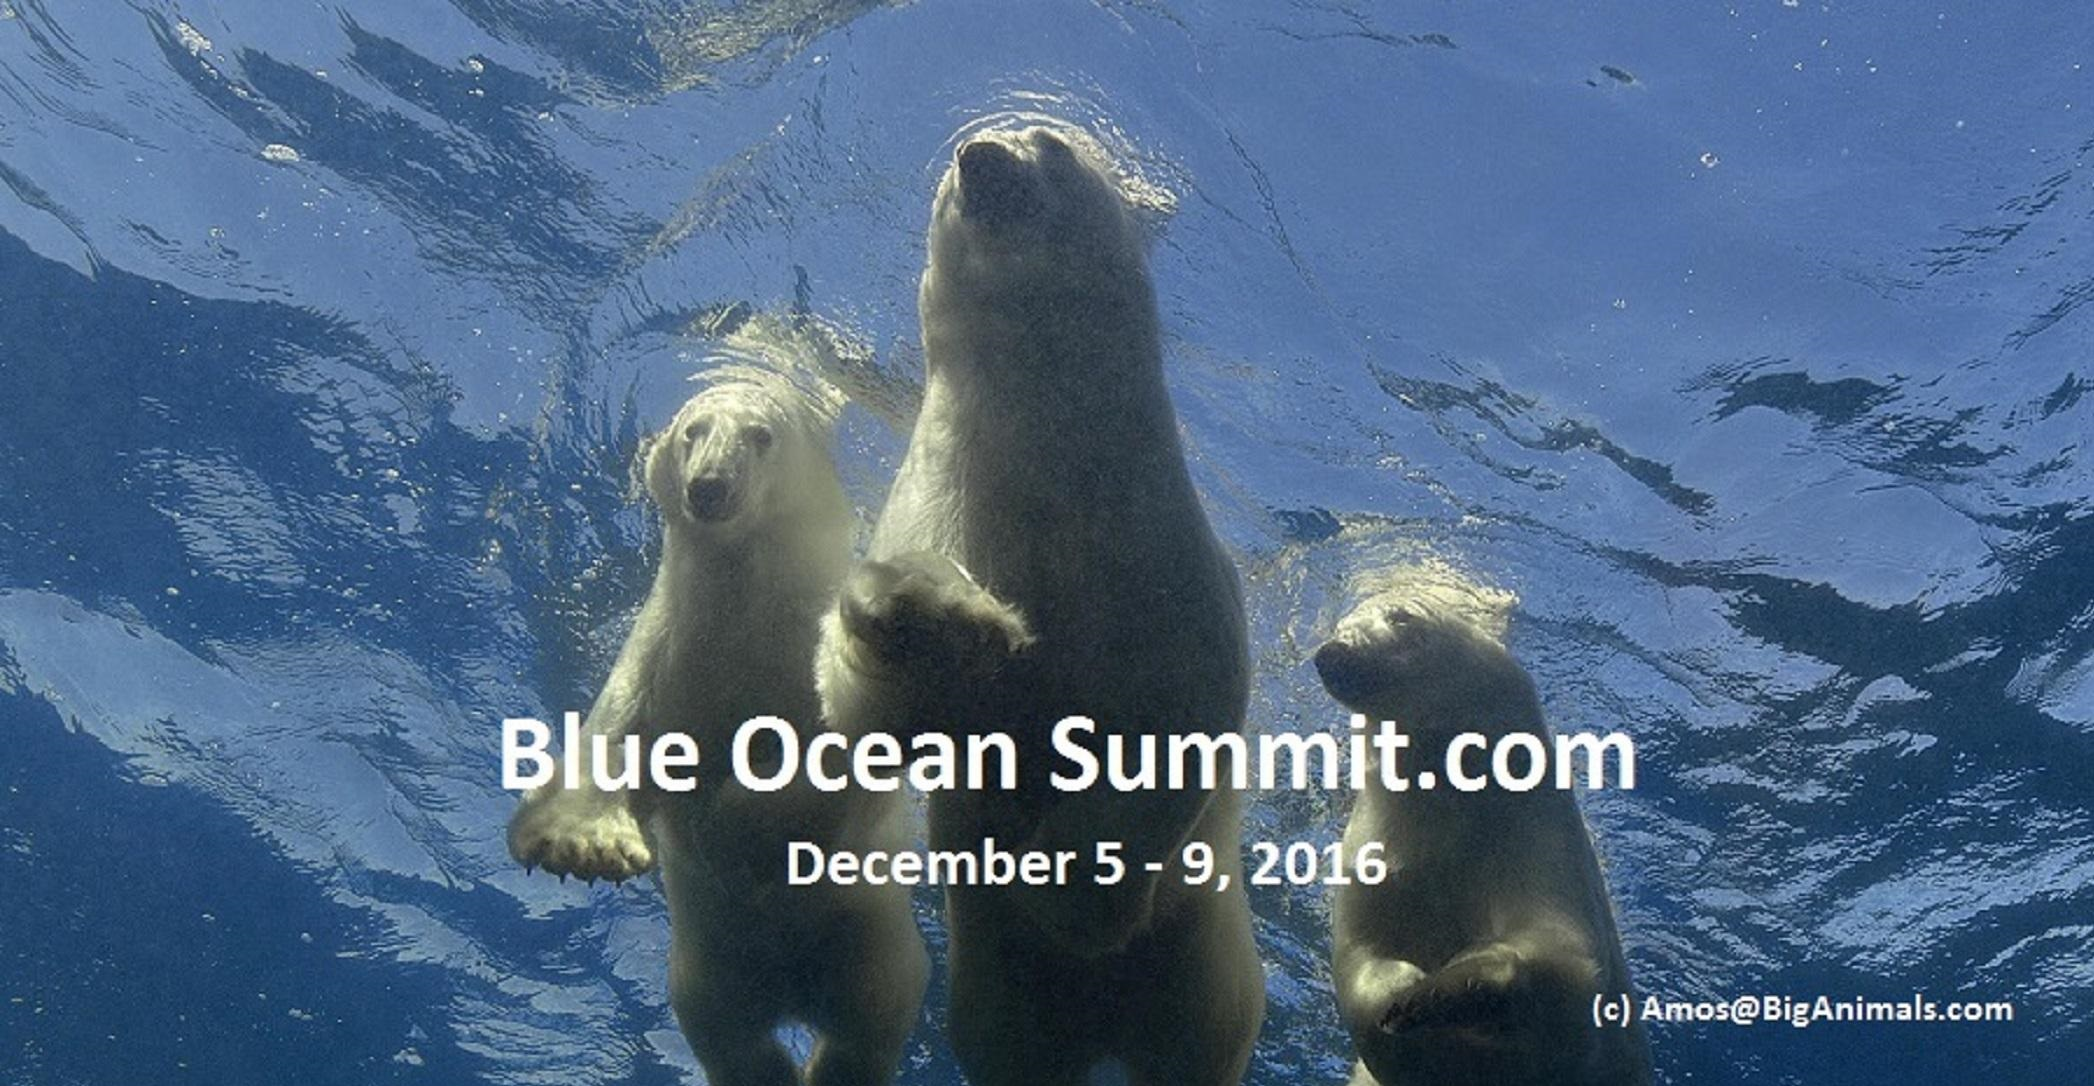 Blue Ocean Summit 2016 Resource Guide